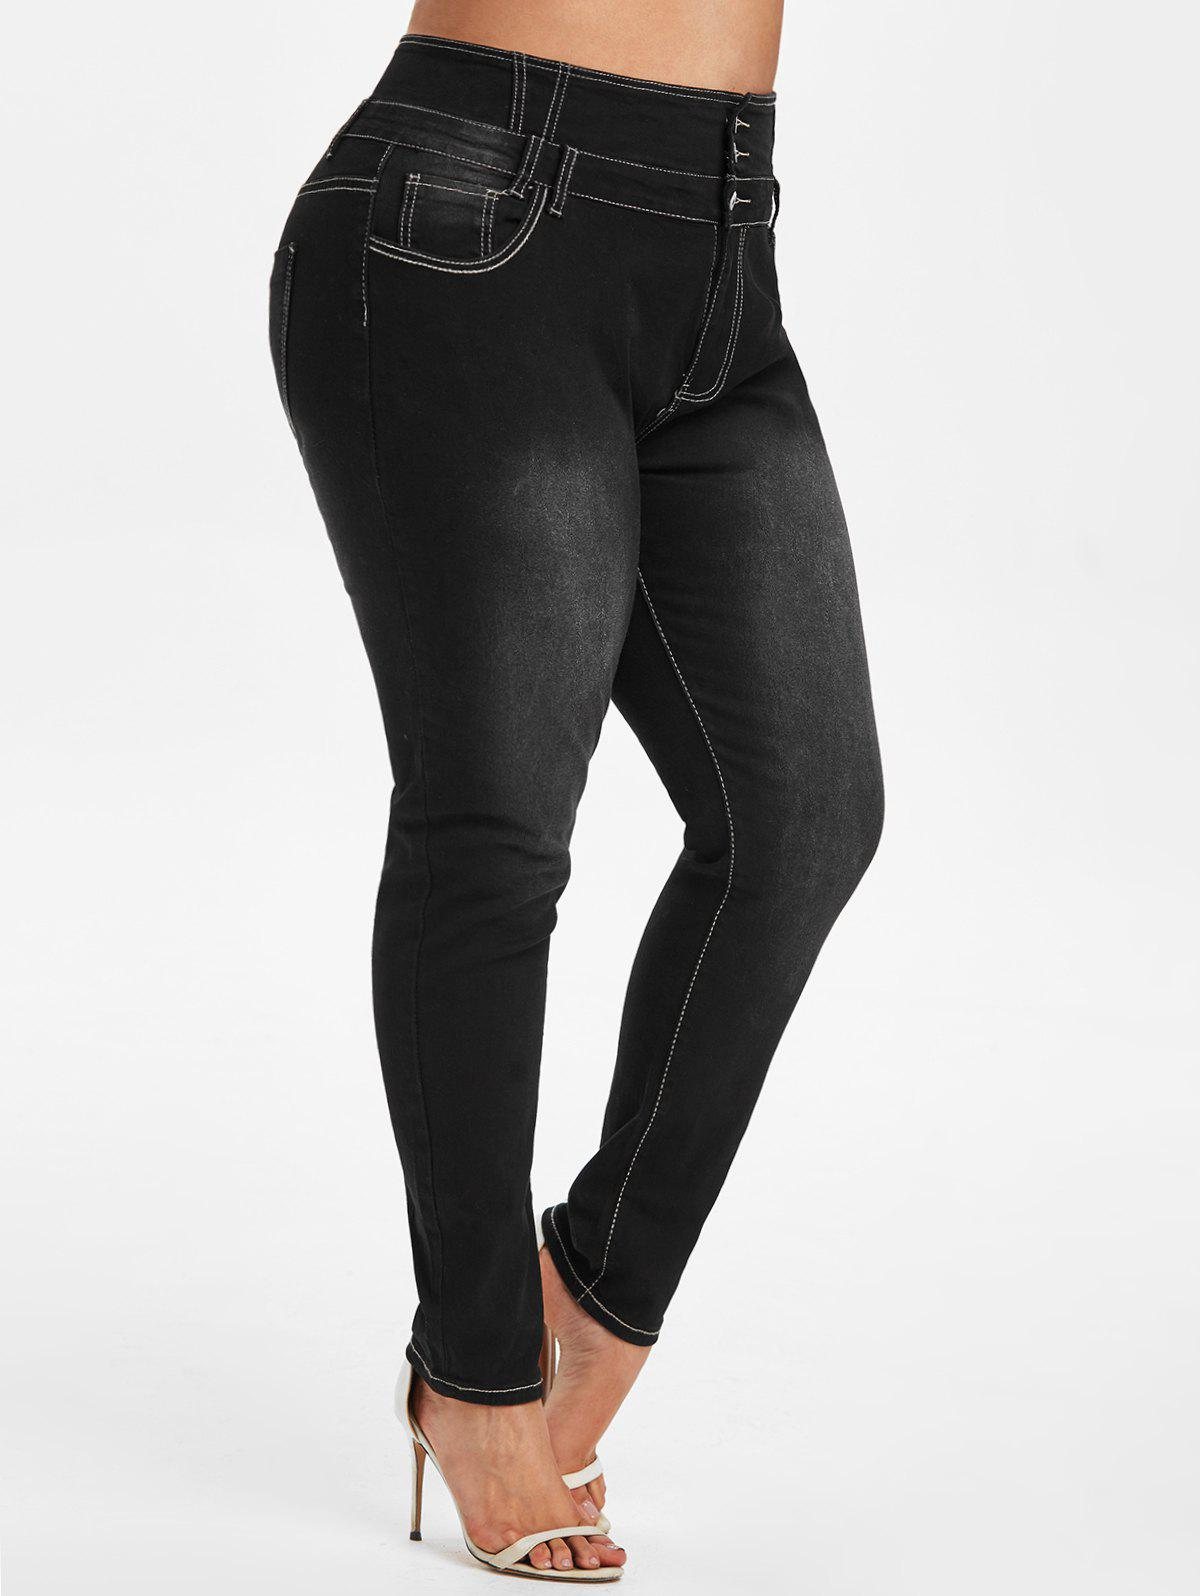 High Waisted Pockets Plus Size Skinny Jeans - BLACK 3X